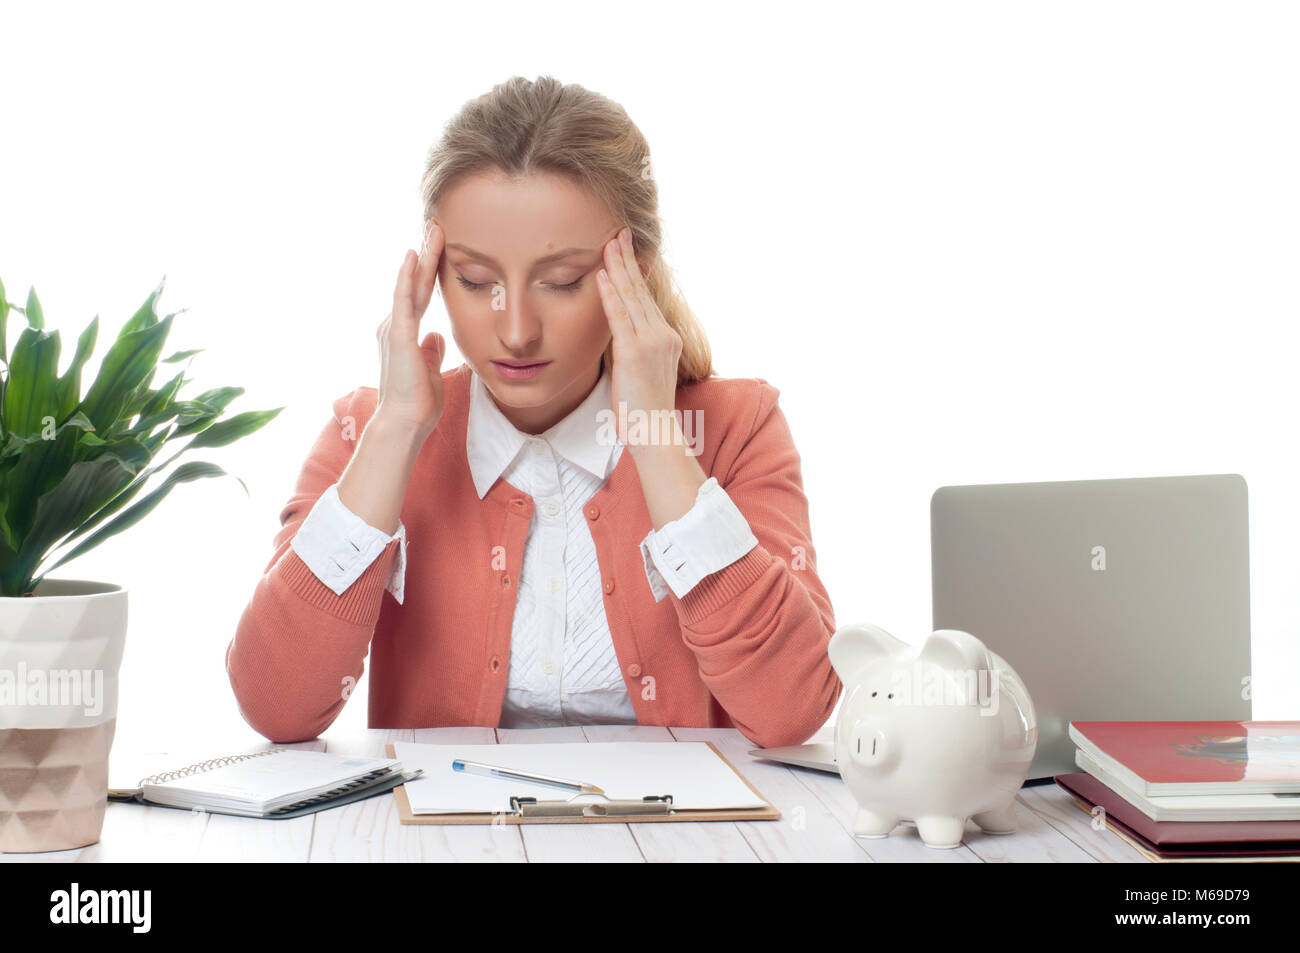 Exhausted businesswoman working at office desk is having an headache and stressful, too much work - Stock Image